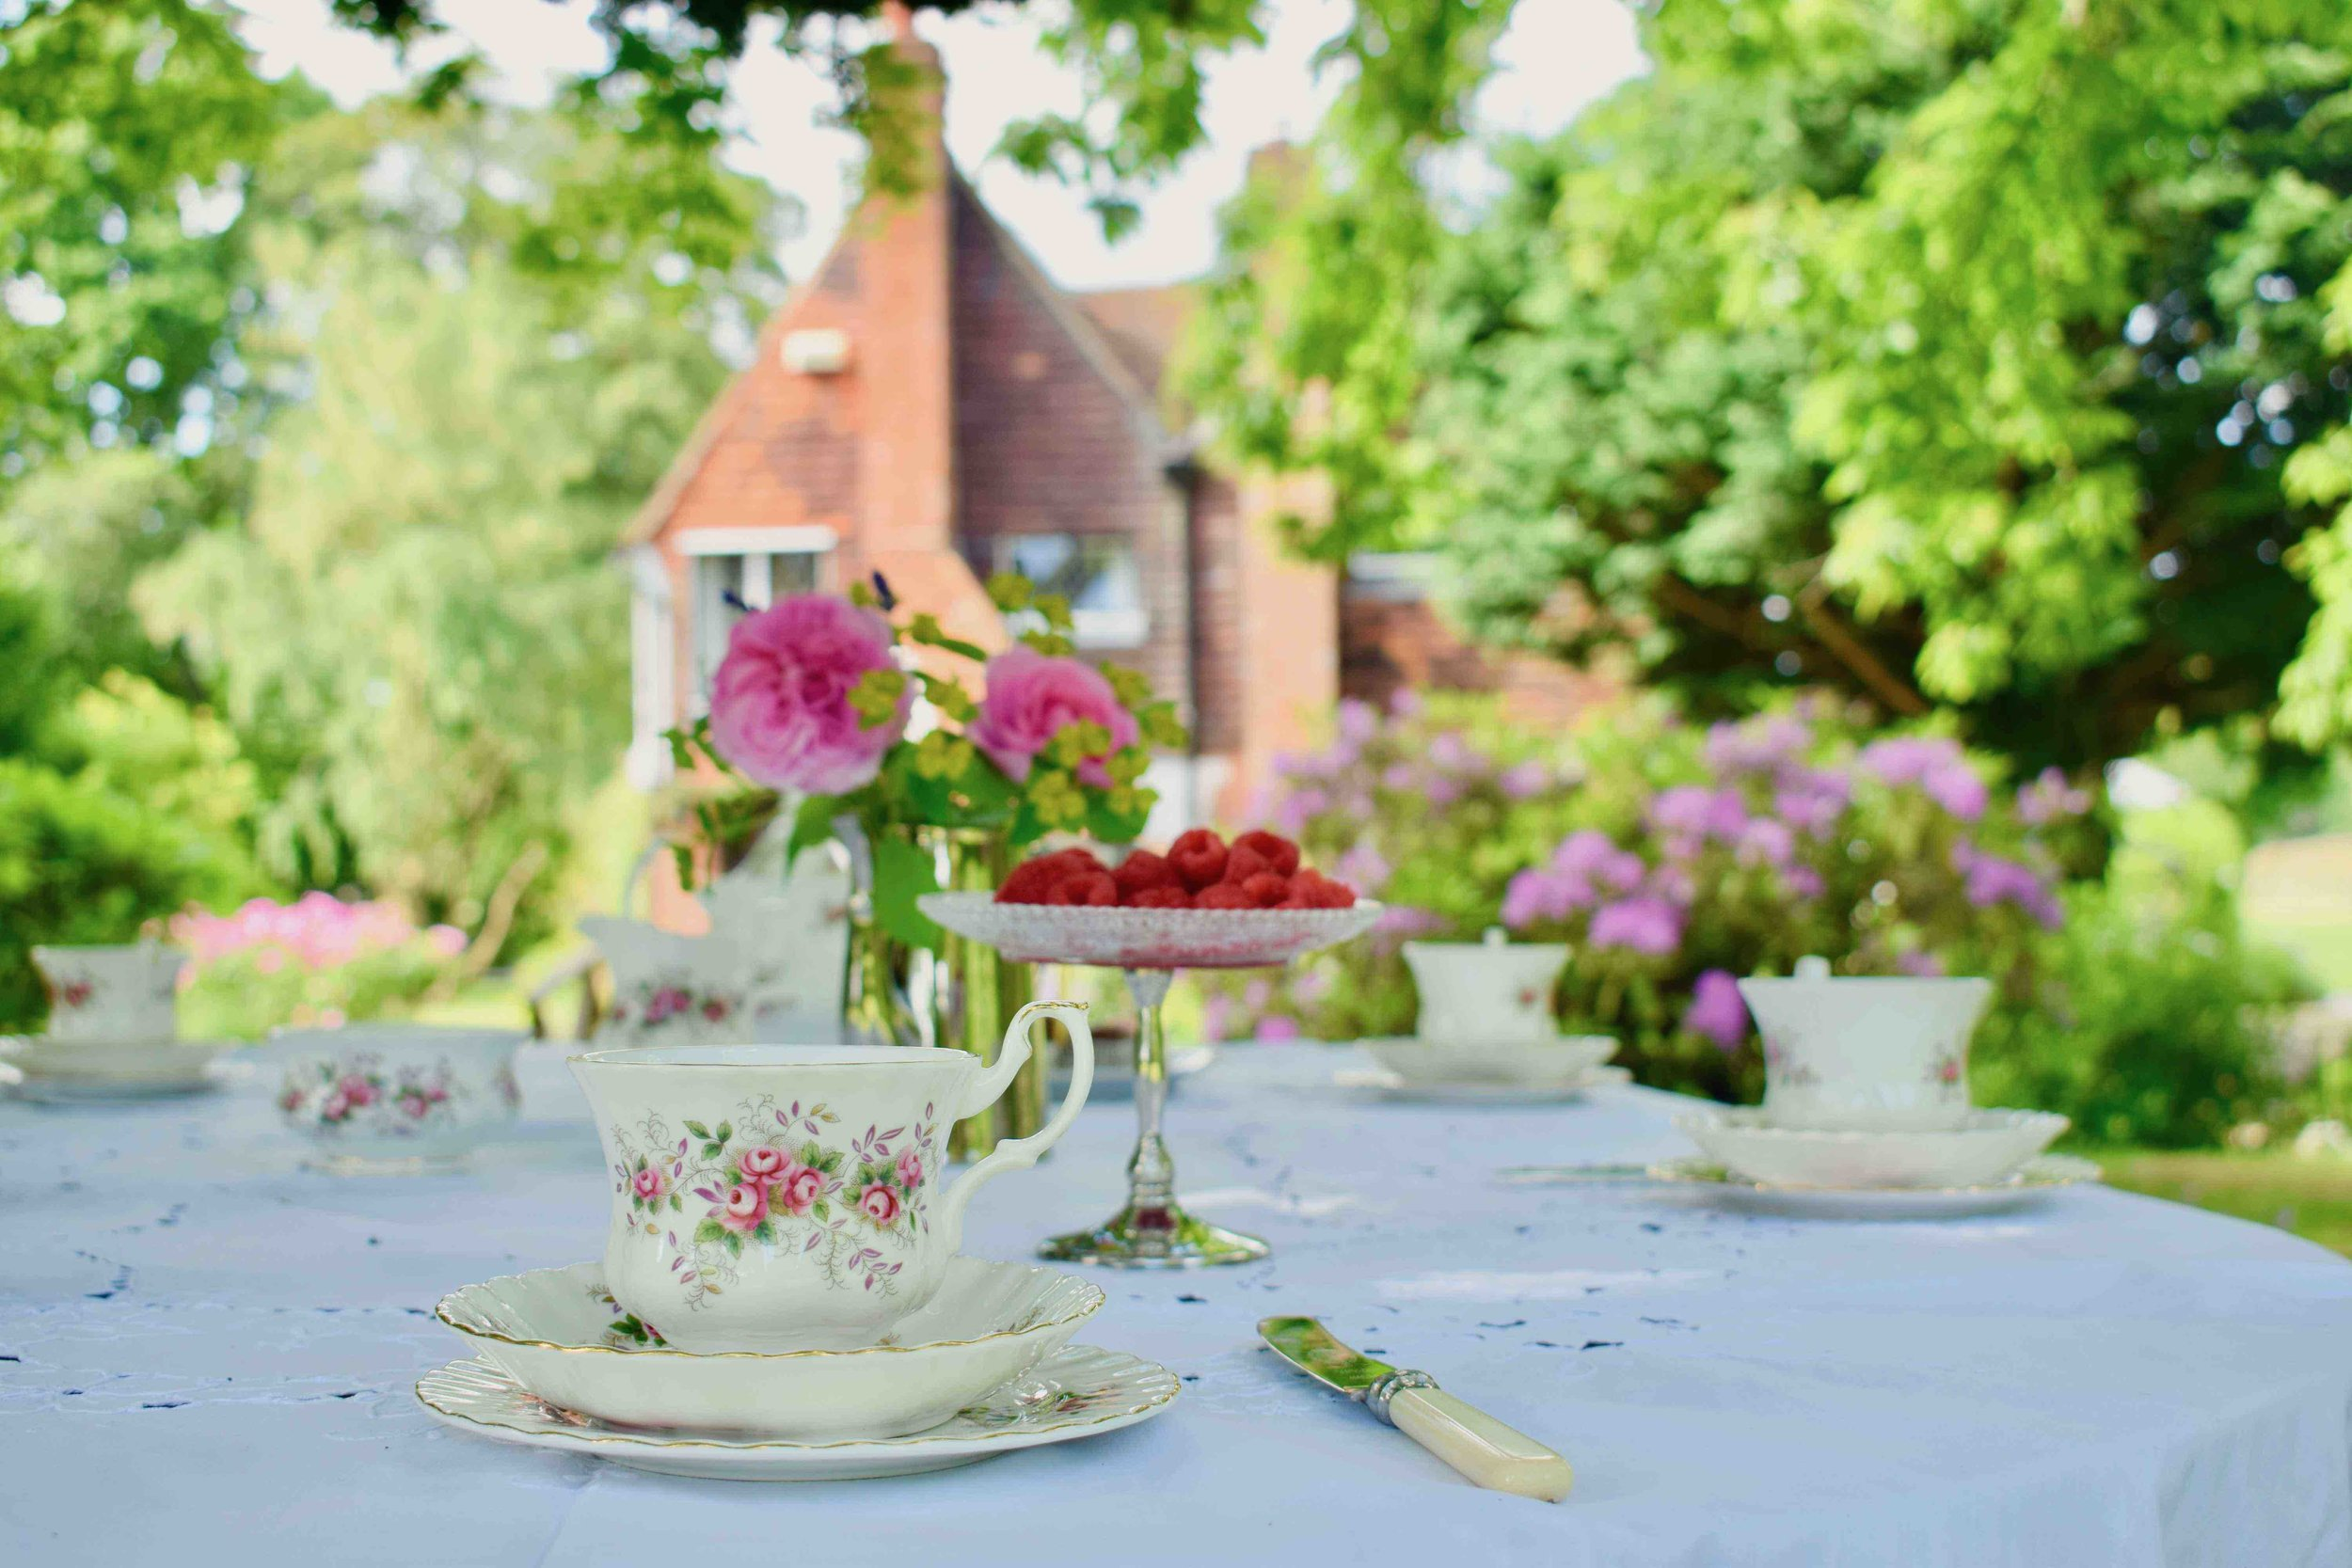 Tea For A Party - Vintage china hire for 35 people, perfect for larger birthday parties, christenings and other celbrations